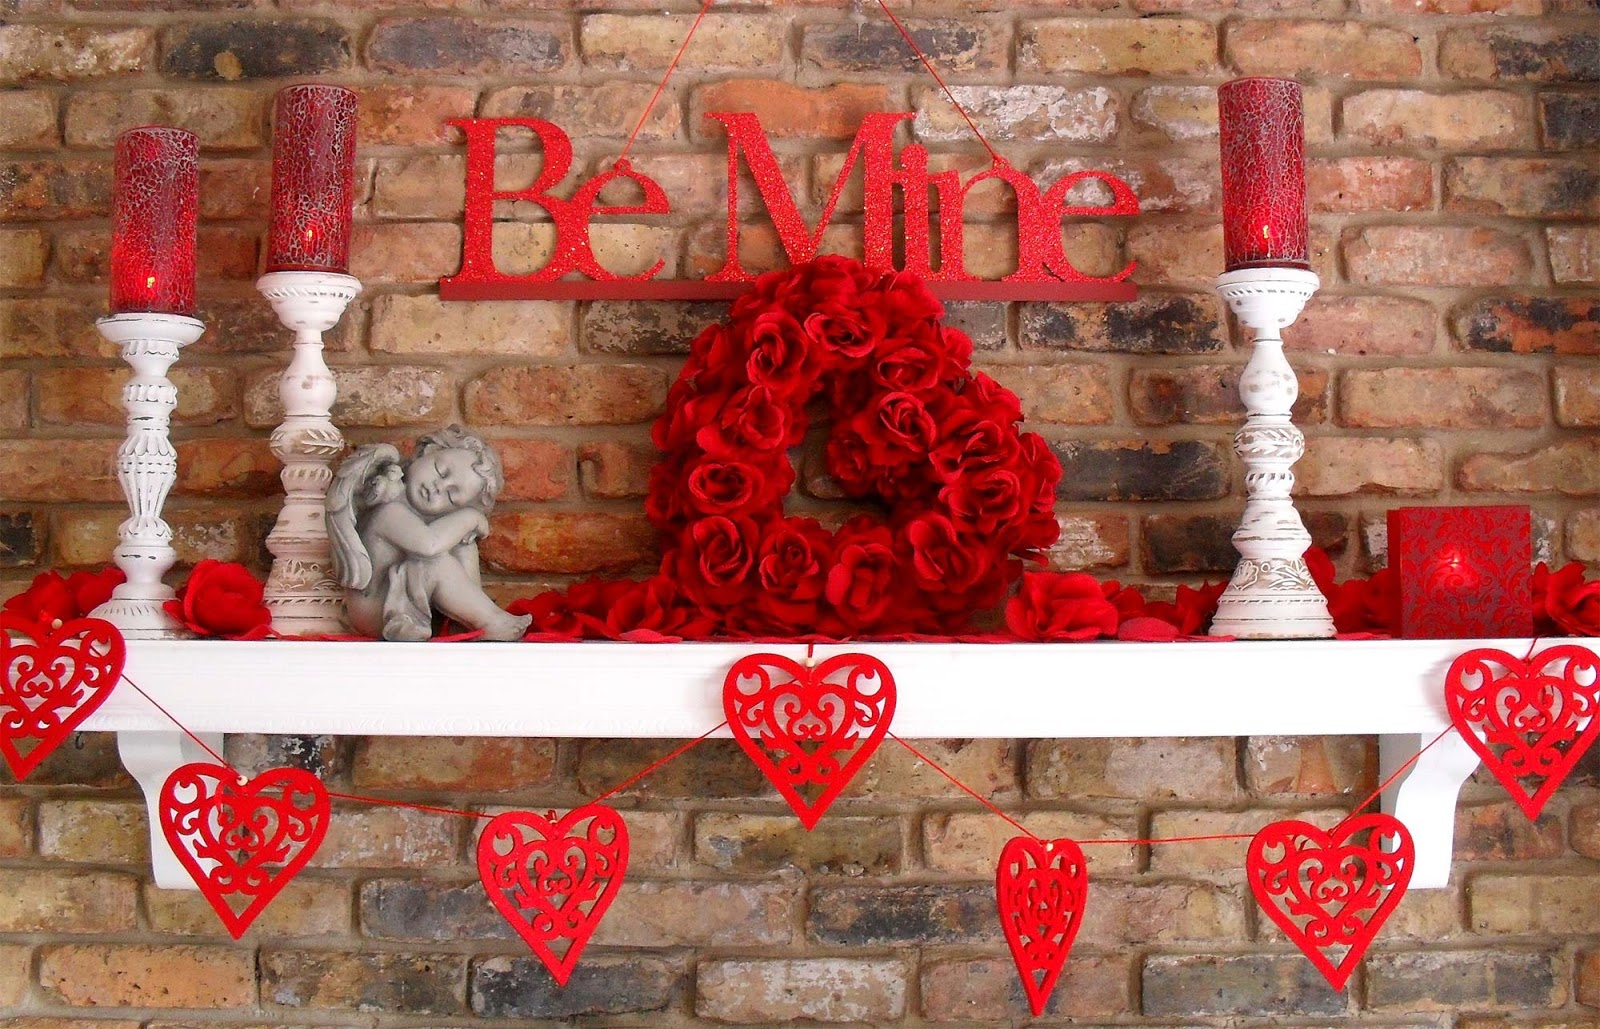 Valentine 39 s day decorations ideas 2013 to decorate bedroom - Valentines room decoration ideas ...